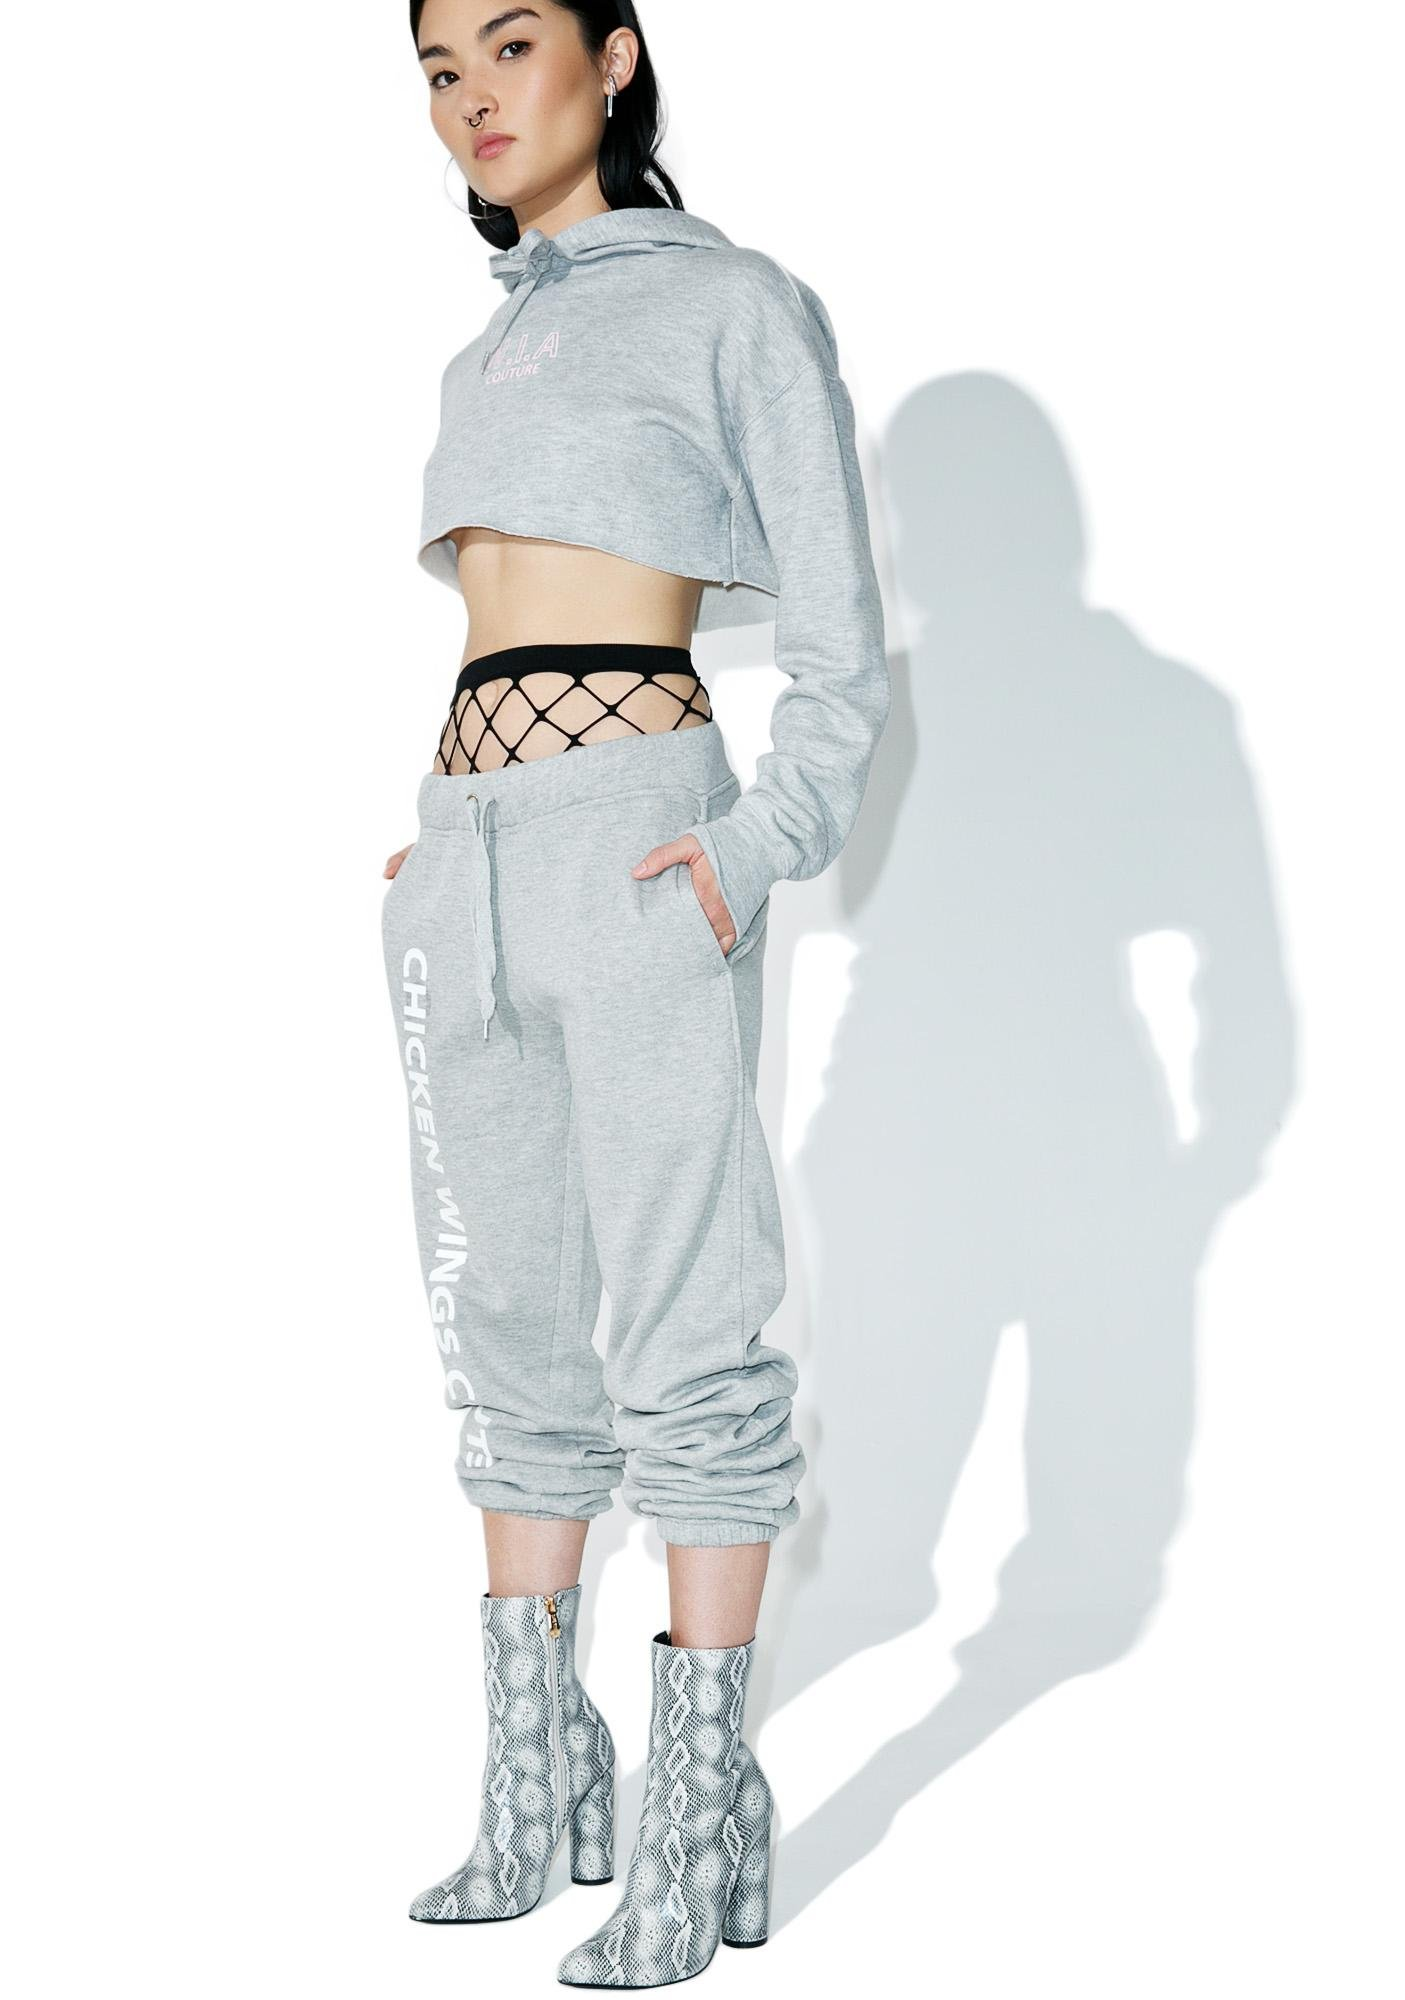 W.I.A Chicken Wings Couture Sweatpants